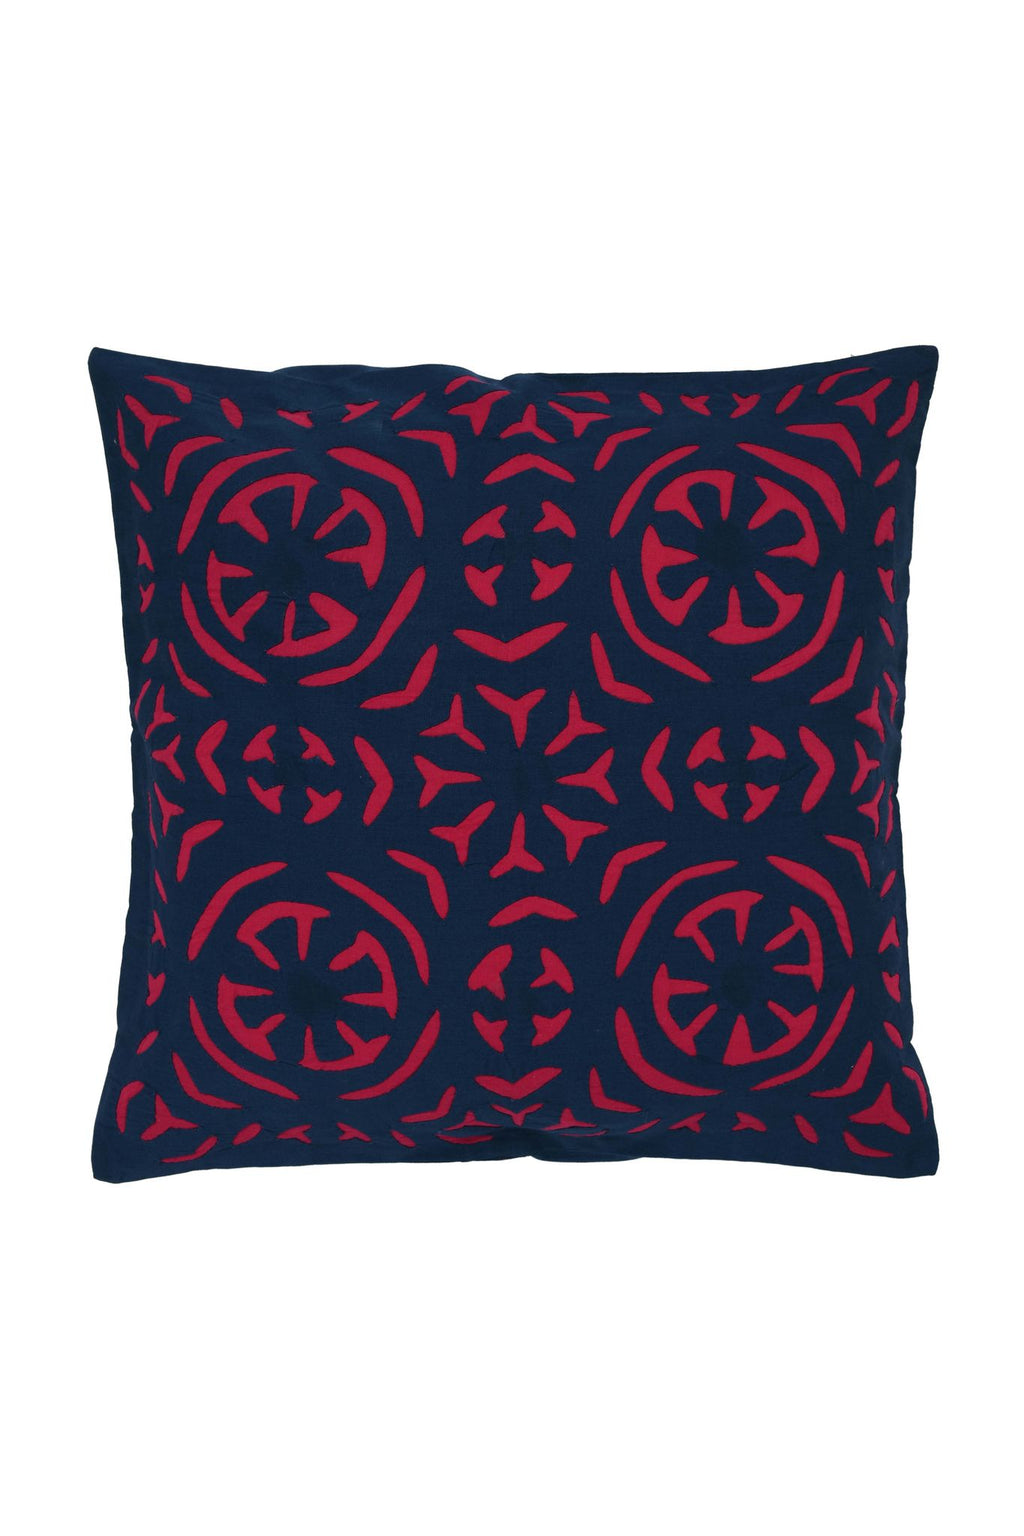 Hand Applique Navy and Pink Cushion Cover